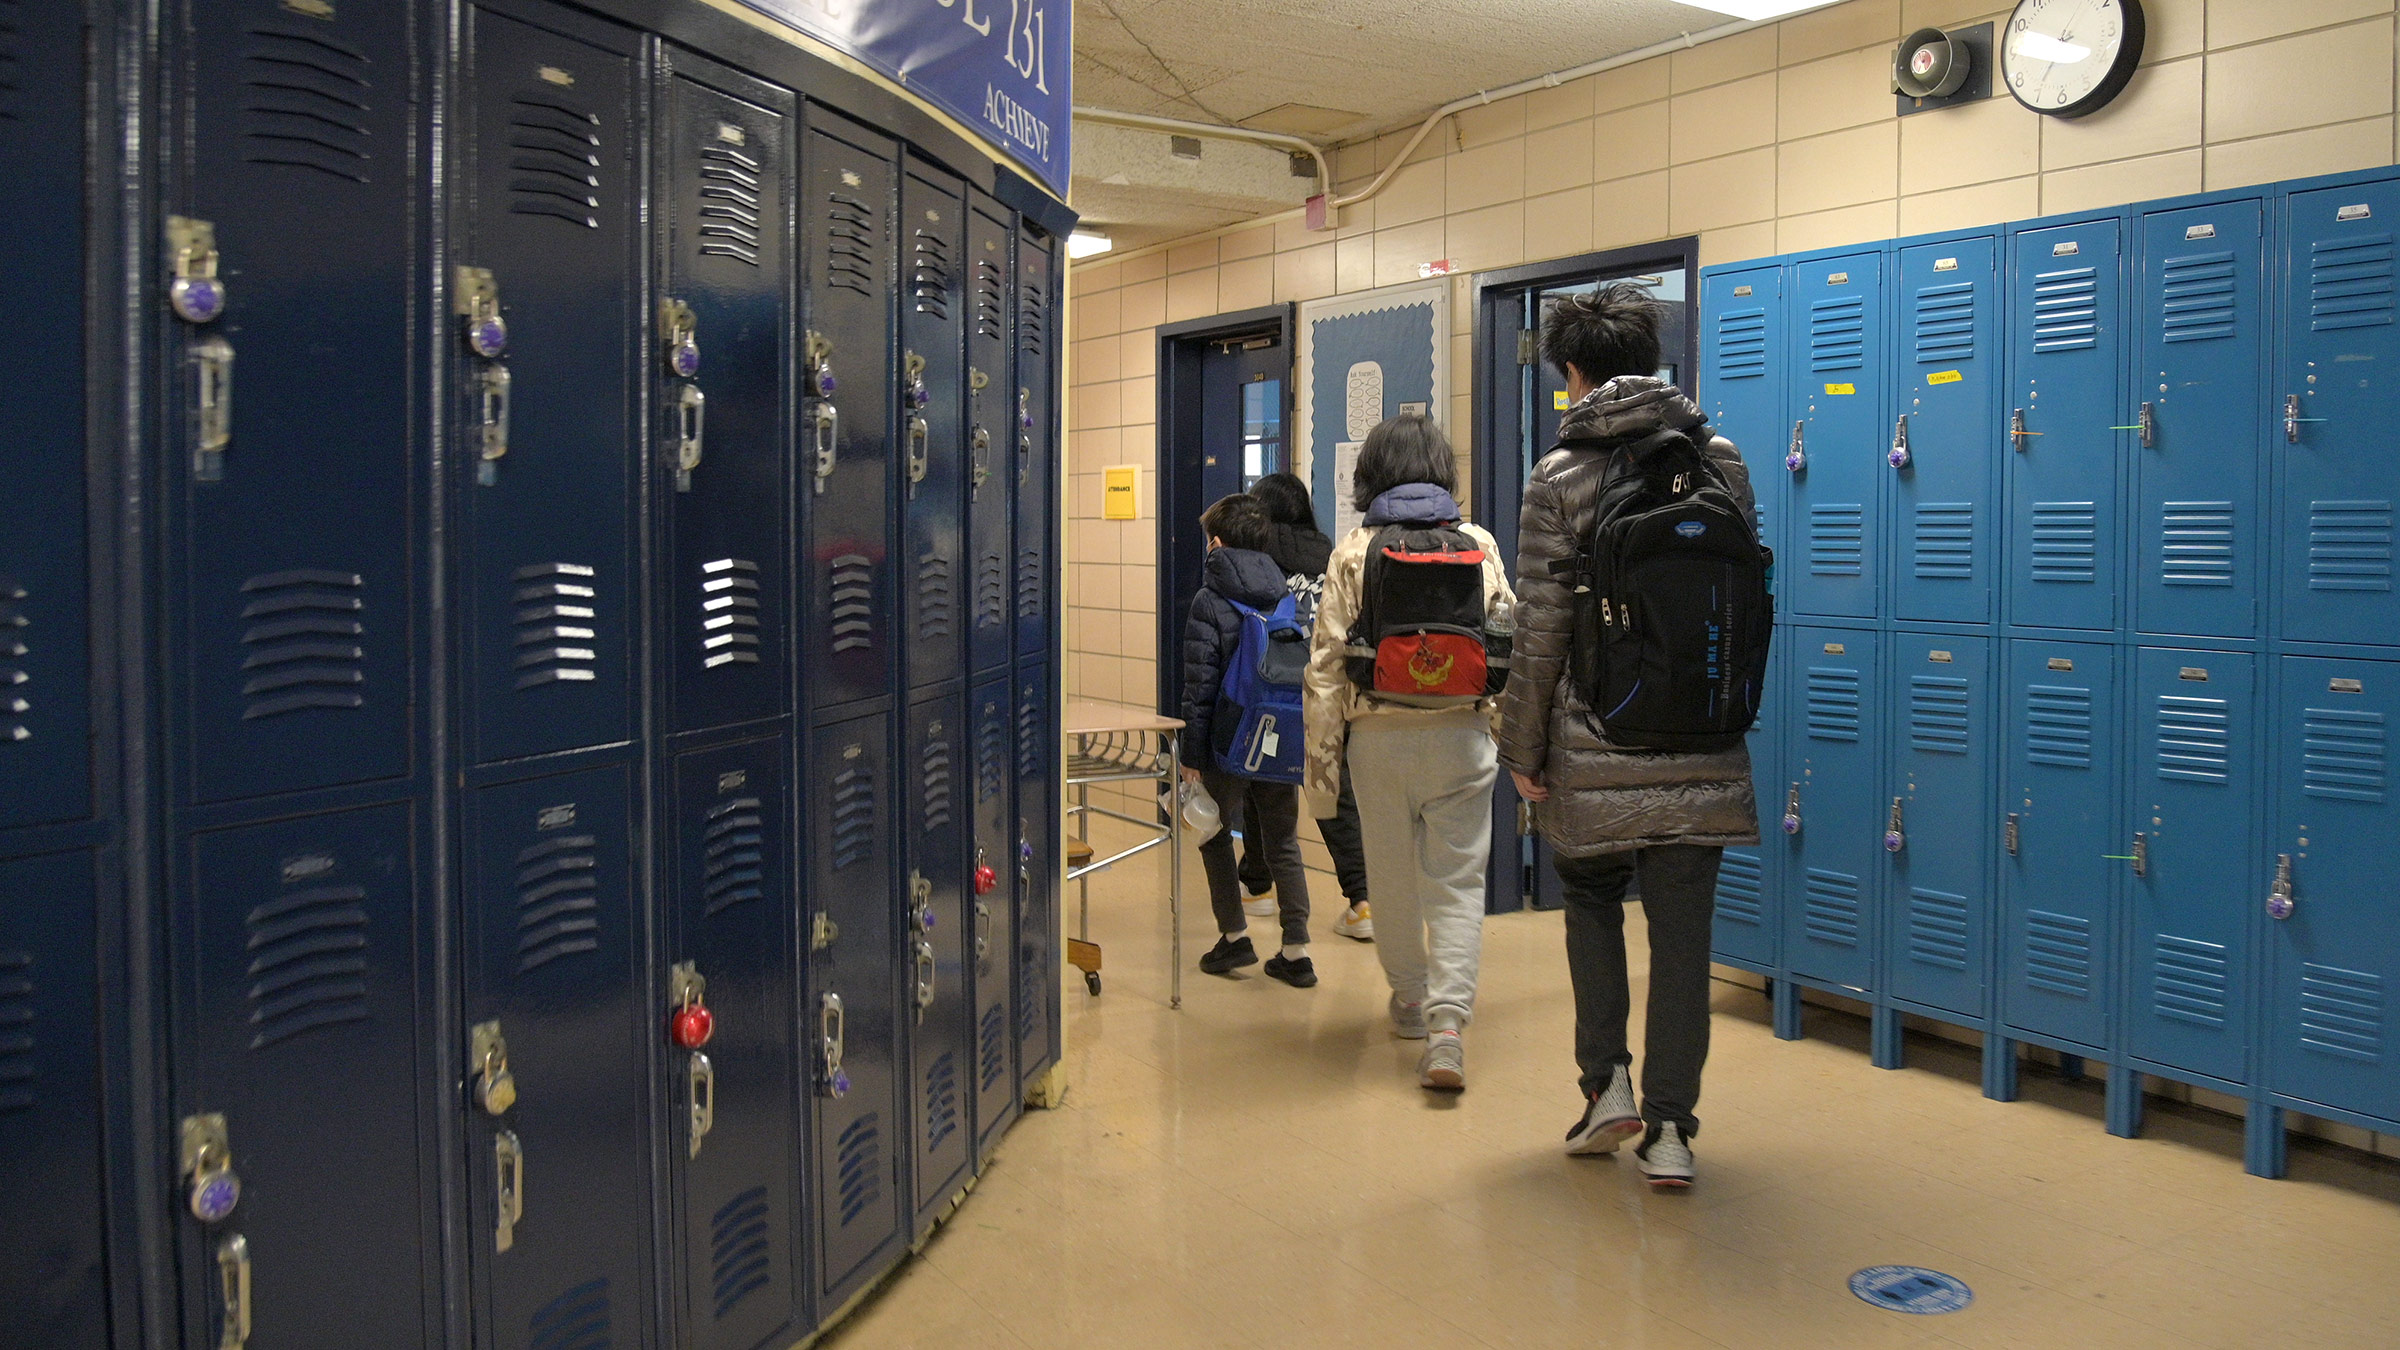 Students walk to class at Sun Yat Sen M.S. 131 on February 25, in New York City.